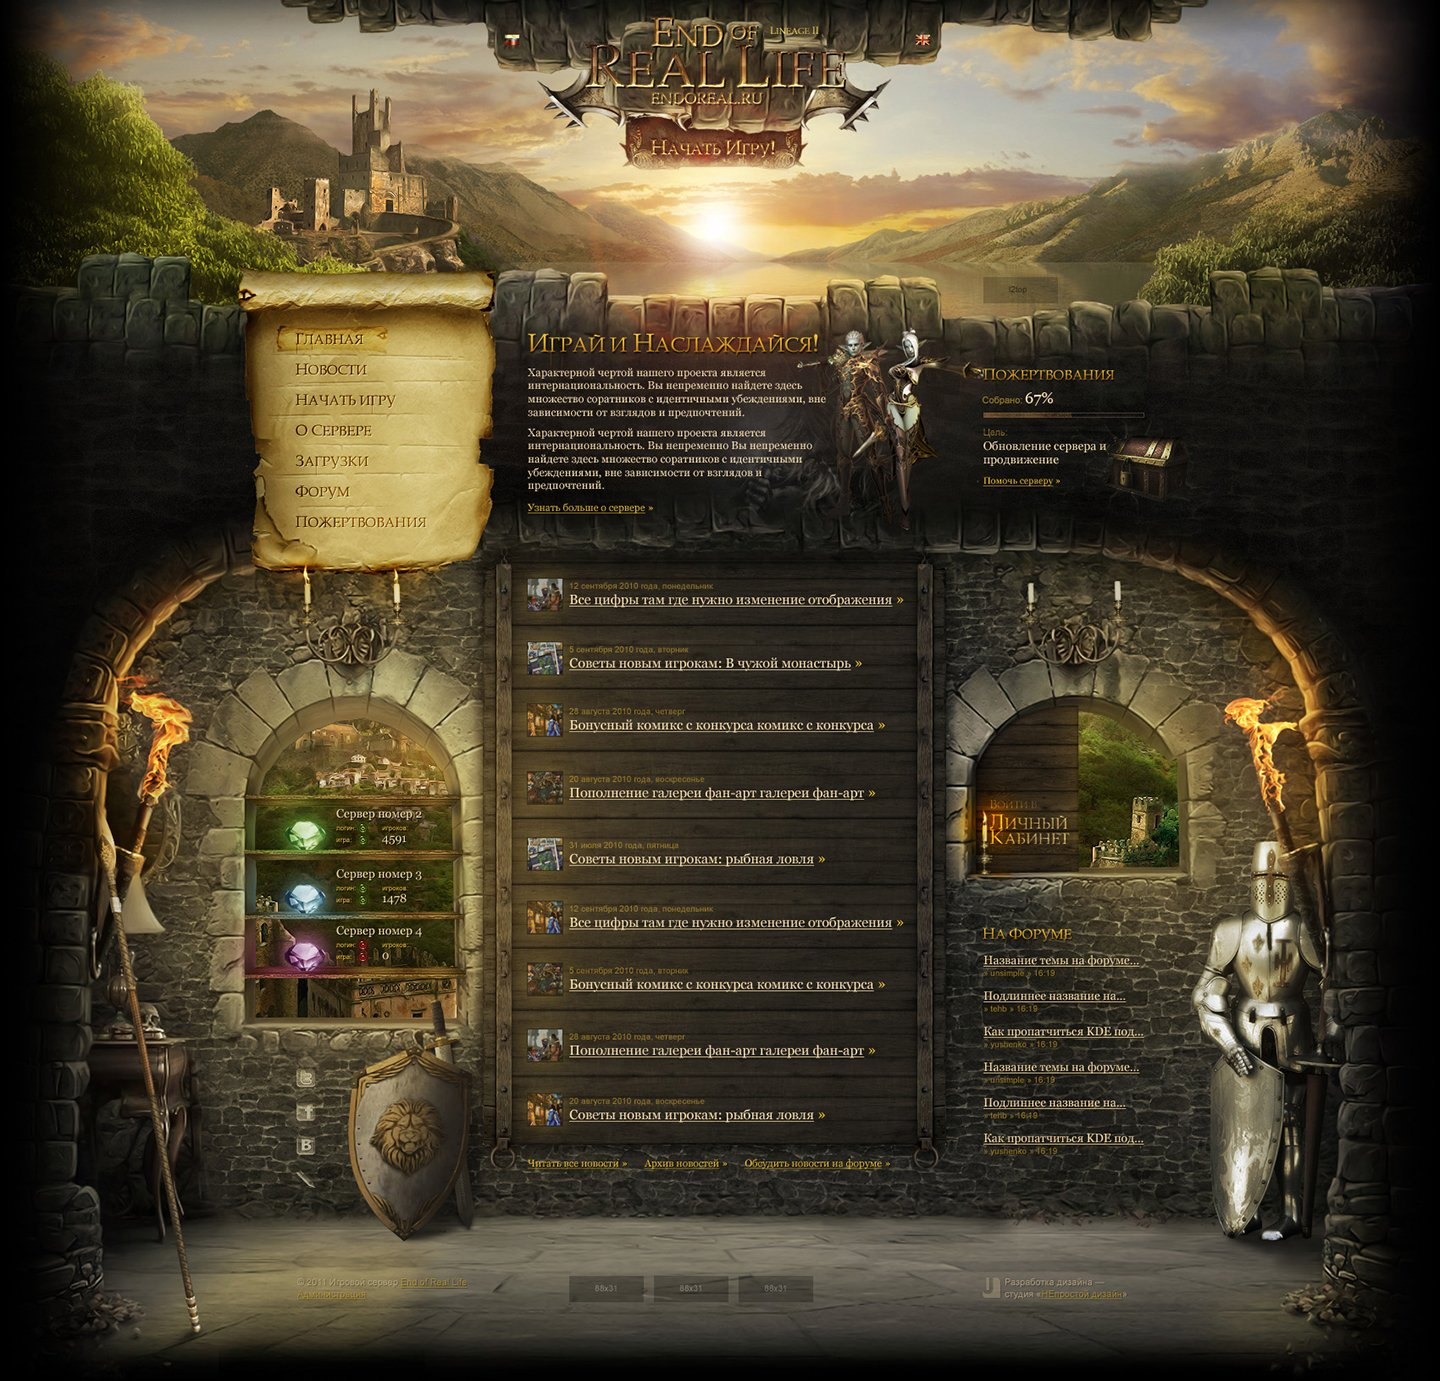 EndorReal > Website design for Lineage 2 private server. Main page